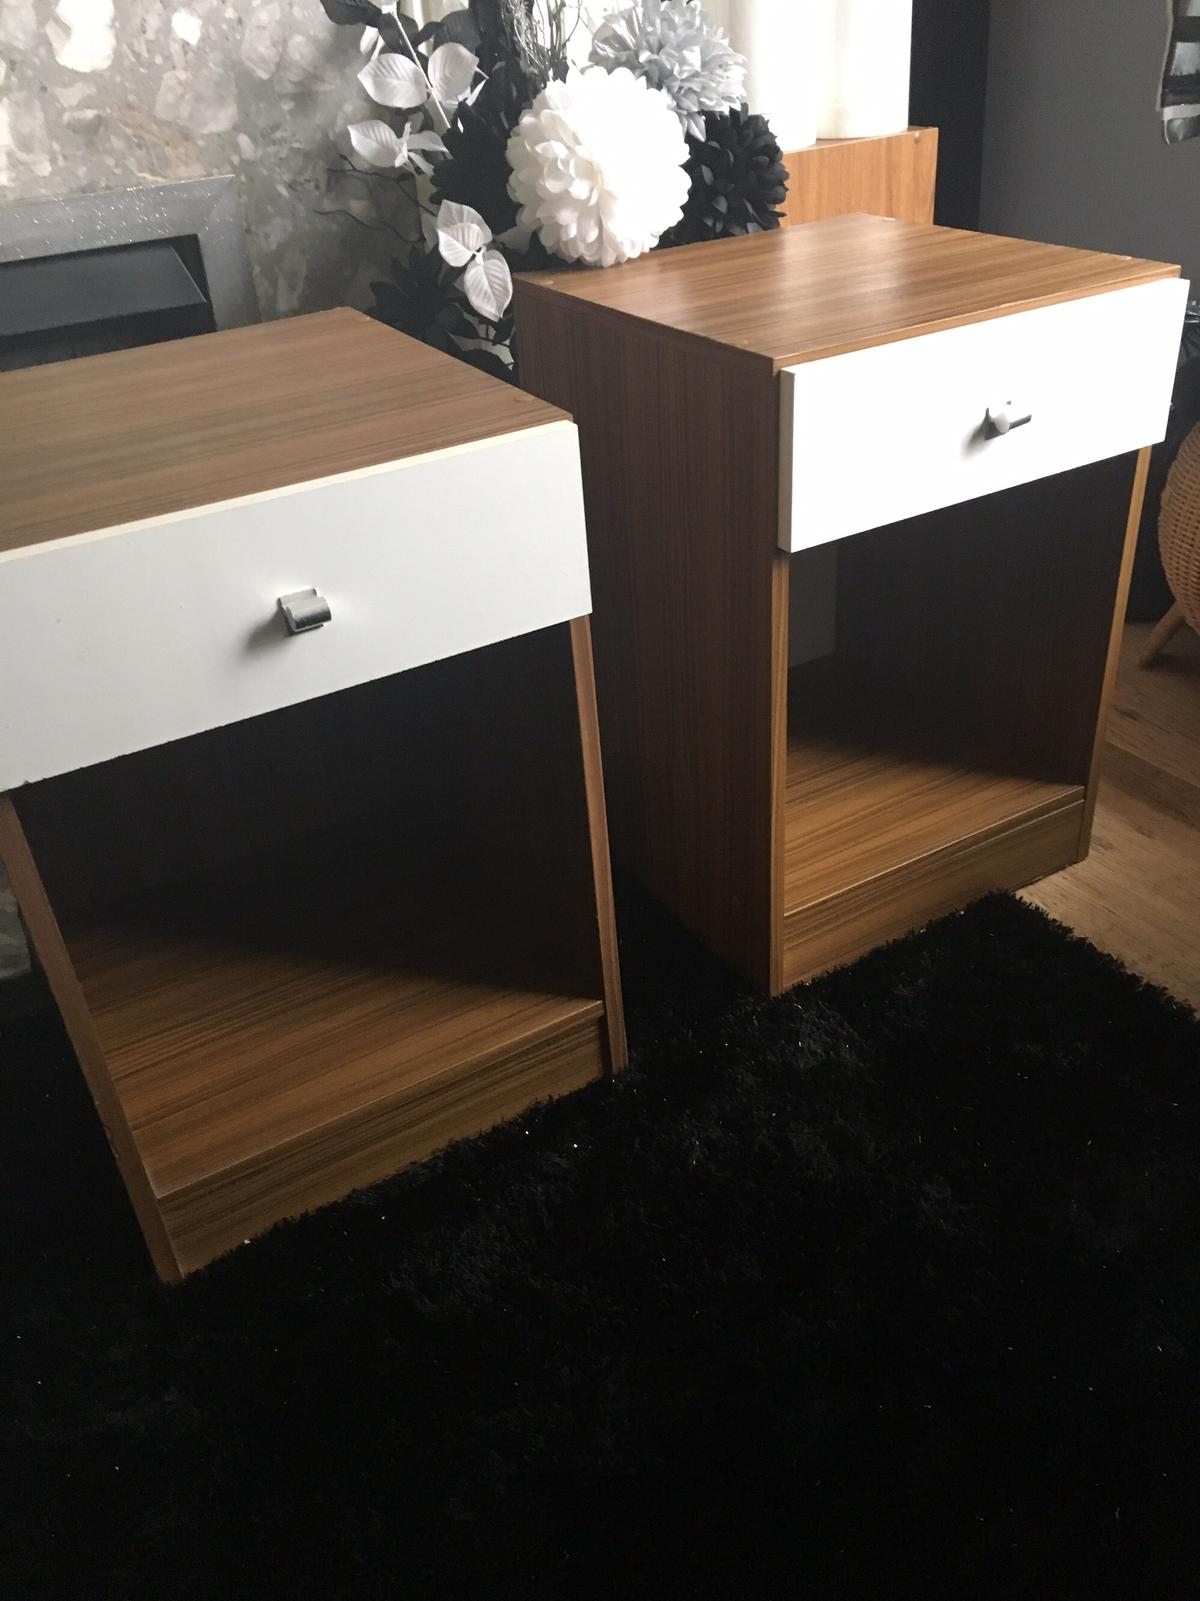 Description Two Bedside Tables